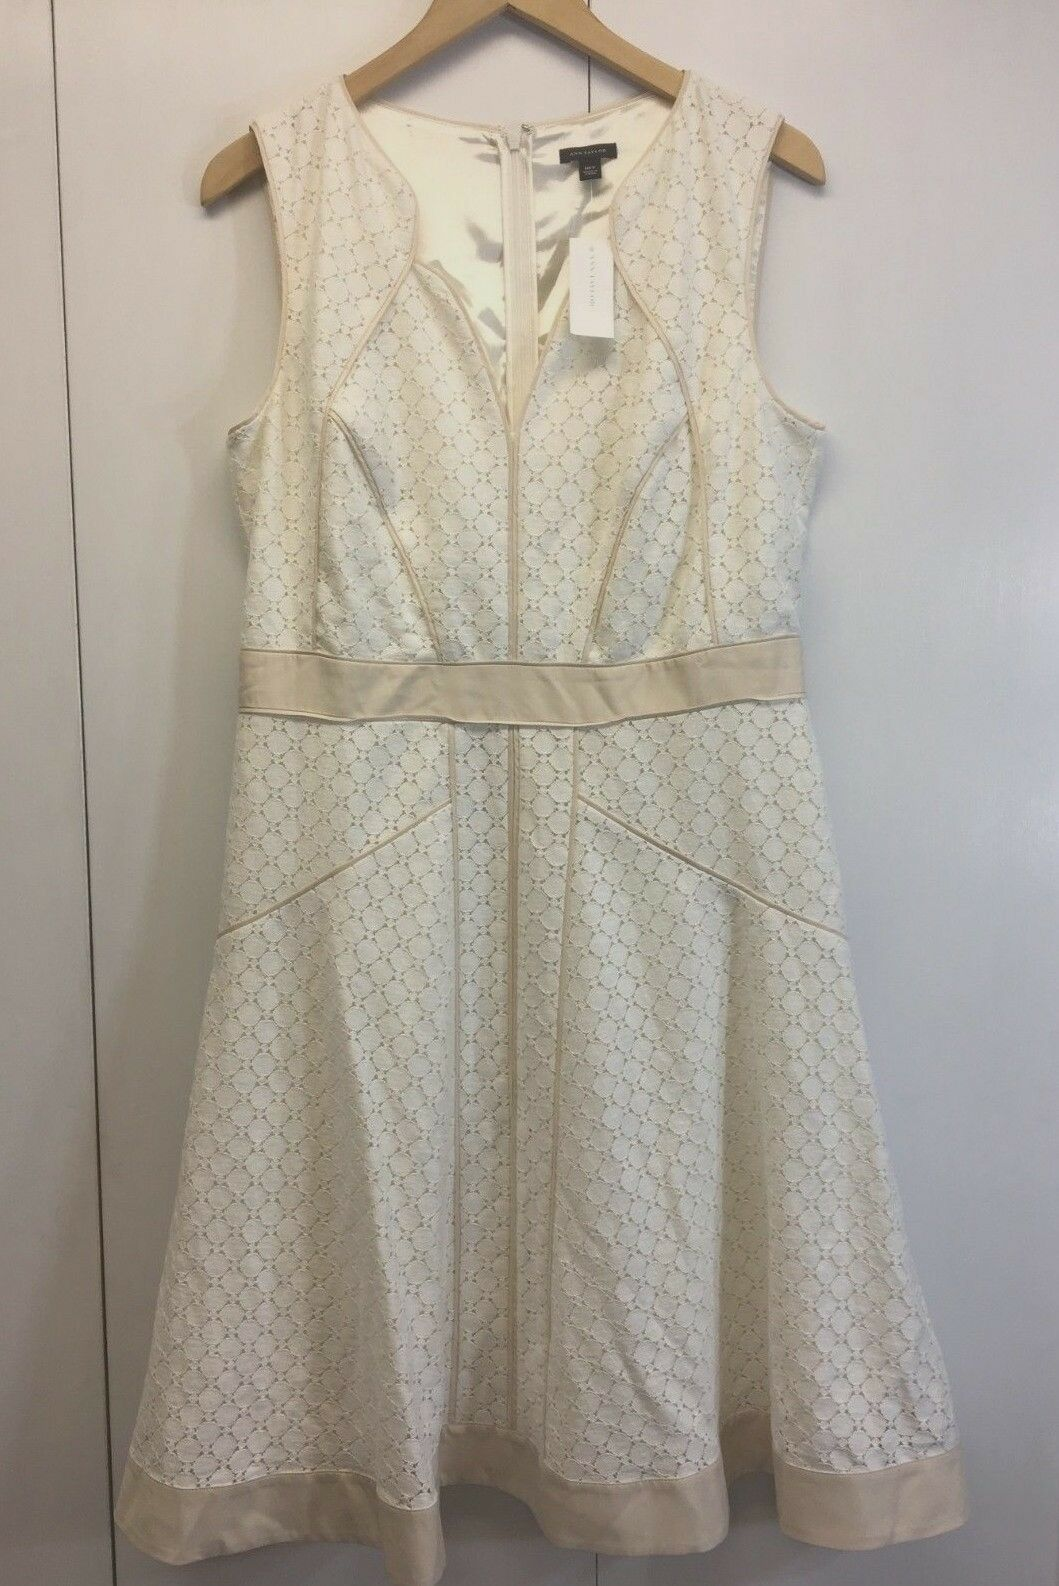 NWT  Ann Taylor Sleeveless Ivory Lace Fully Lined Dress Sz 10T